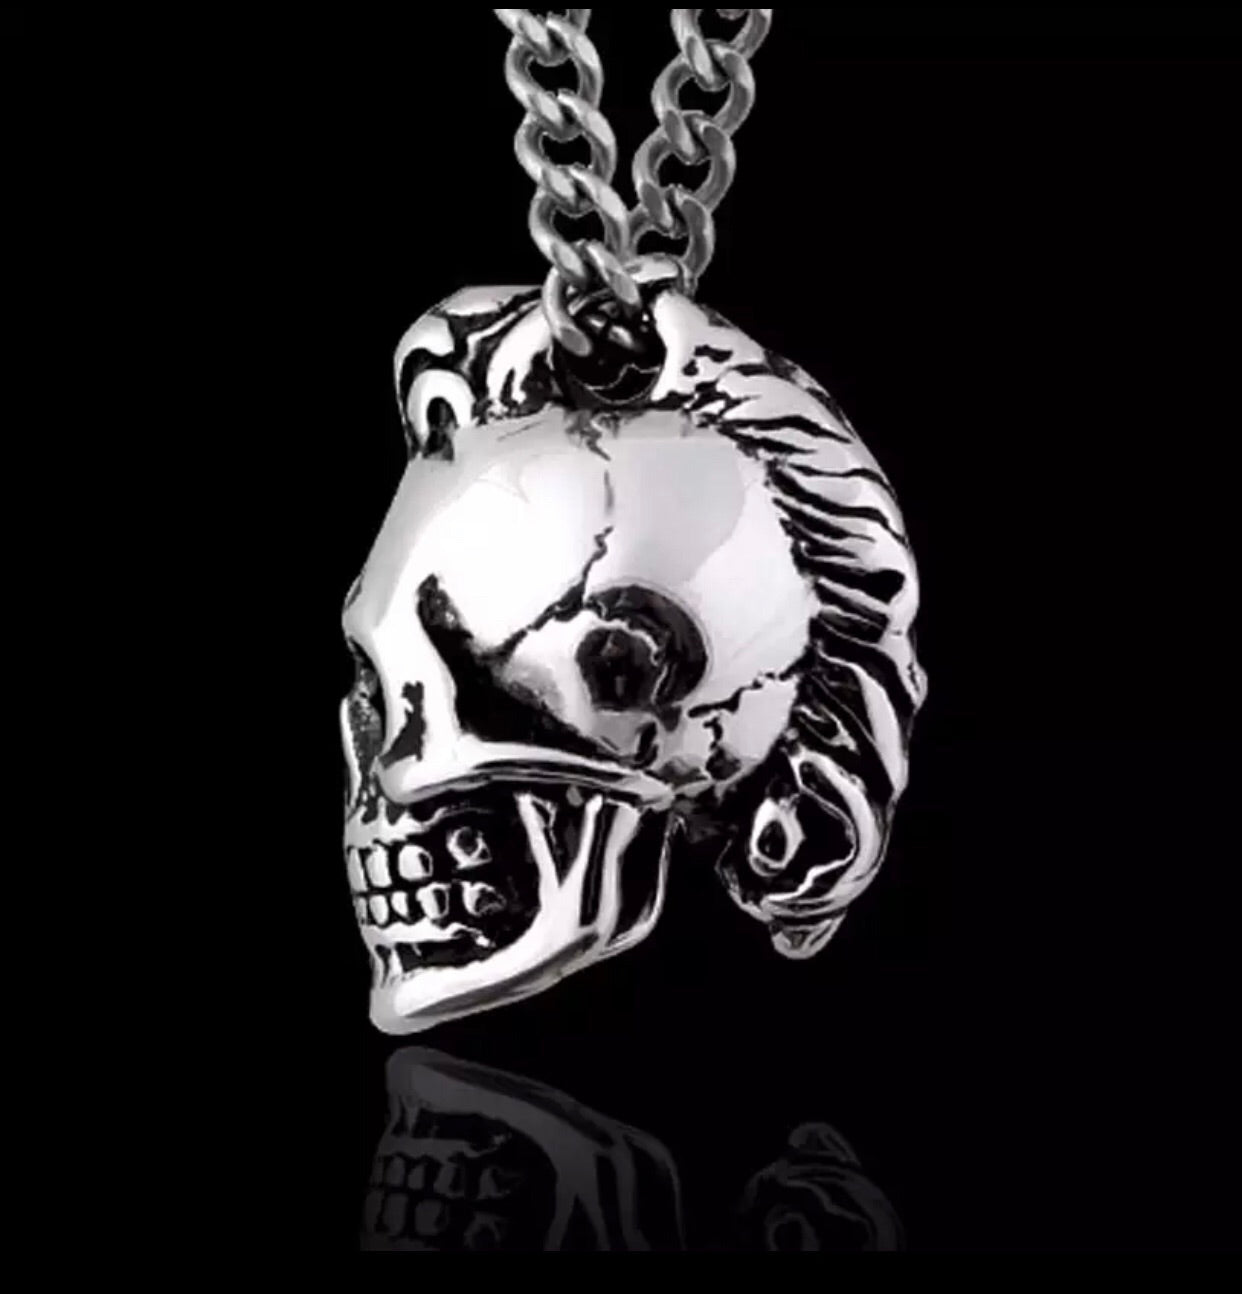 Stainless Steel Punk Skull Necklace